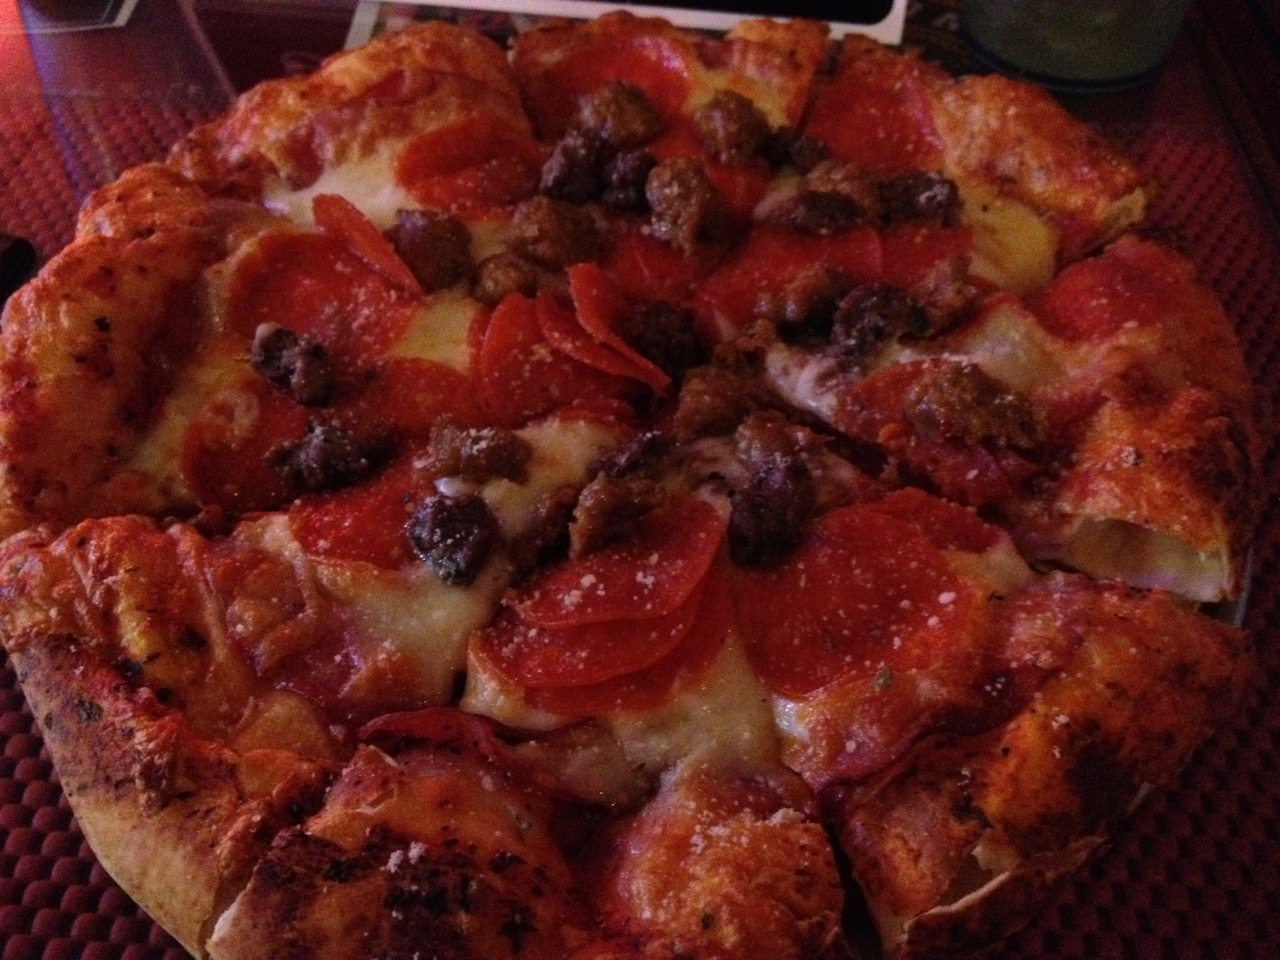 Pepperoni and Sausage Pizza at Brickhouse – November 21 2012